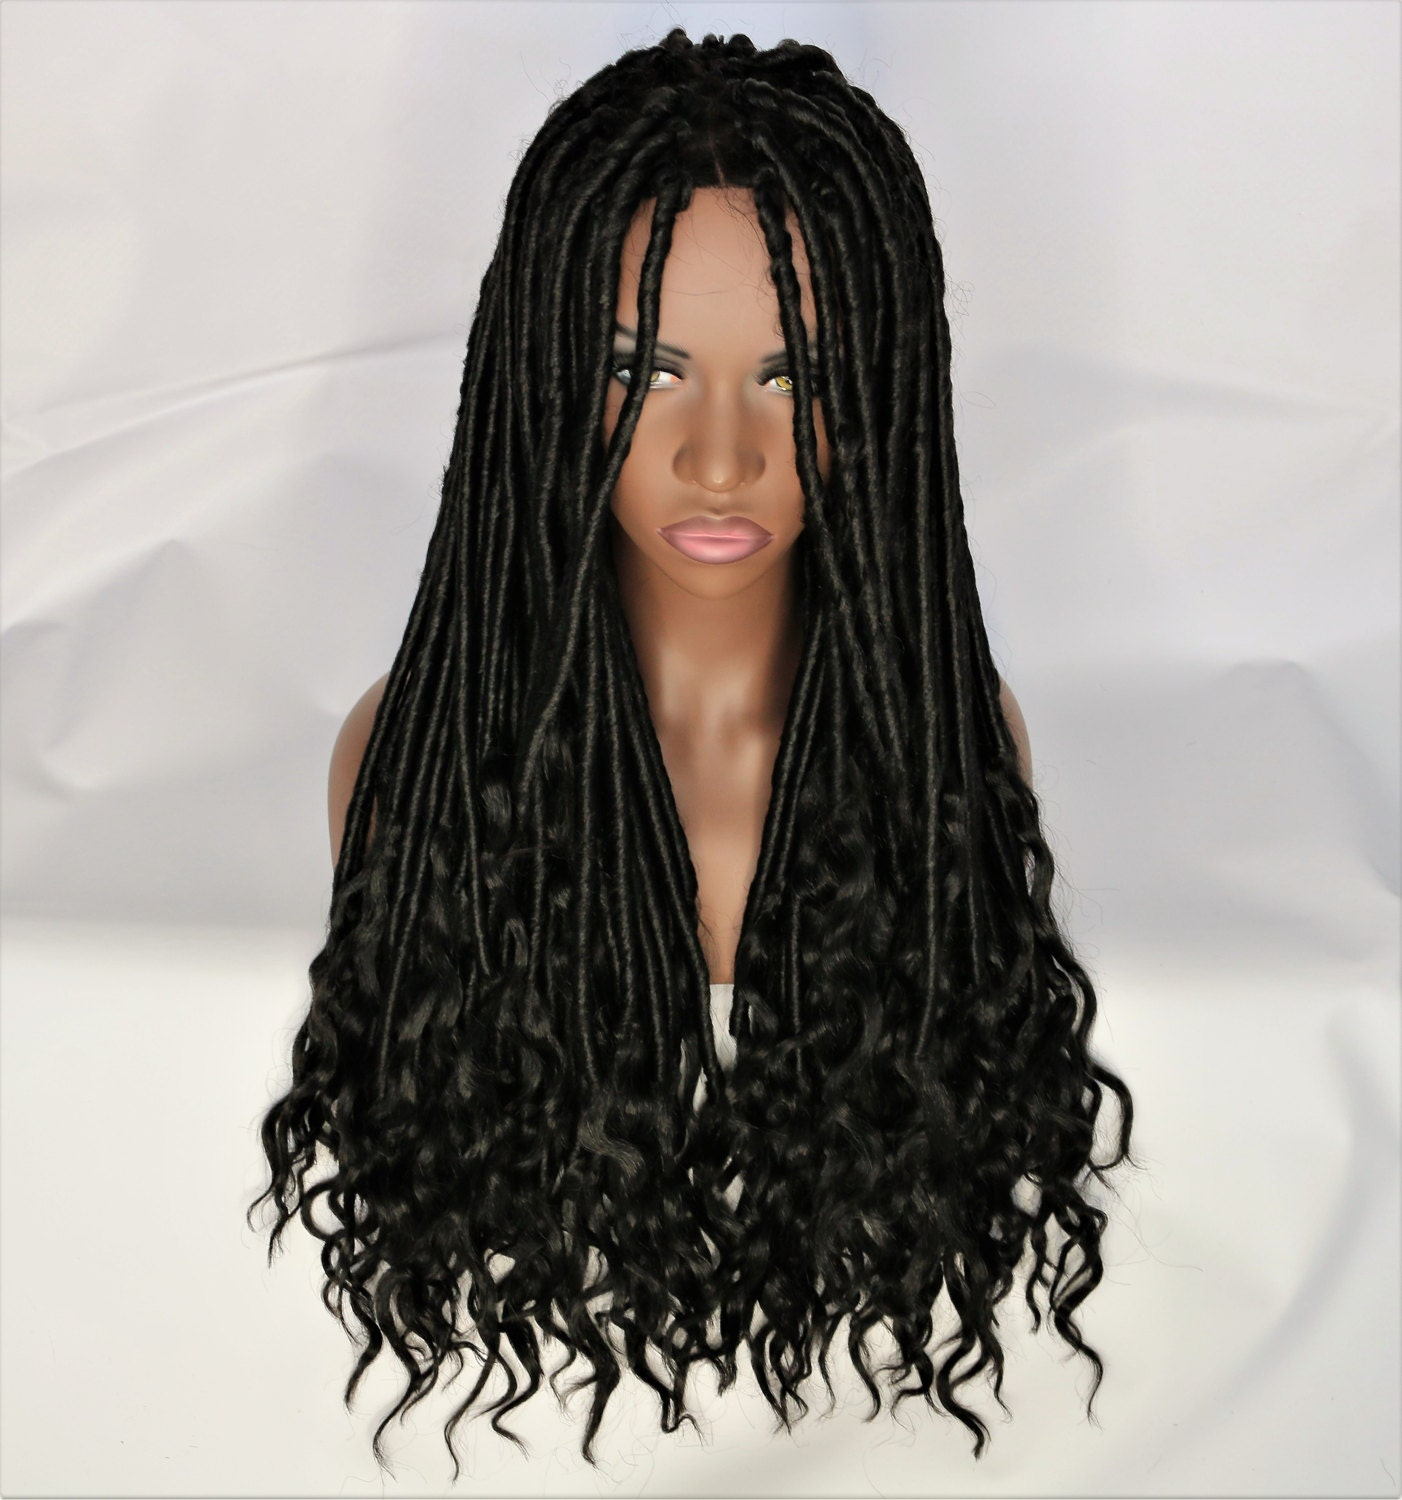 Crochet Goddess Locs : Jet Black Goddess Locs Crochet Wig W/ 4x4 Lace Closure